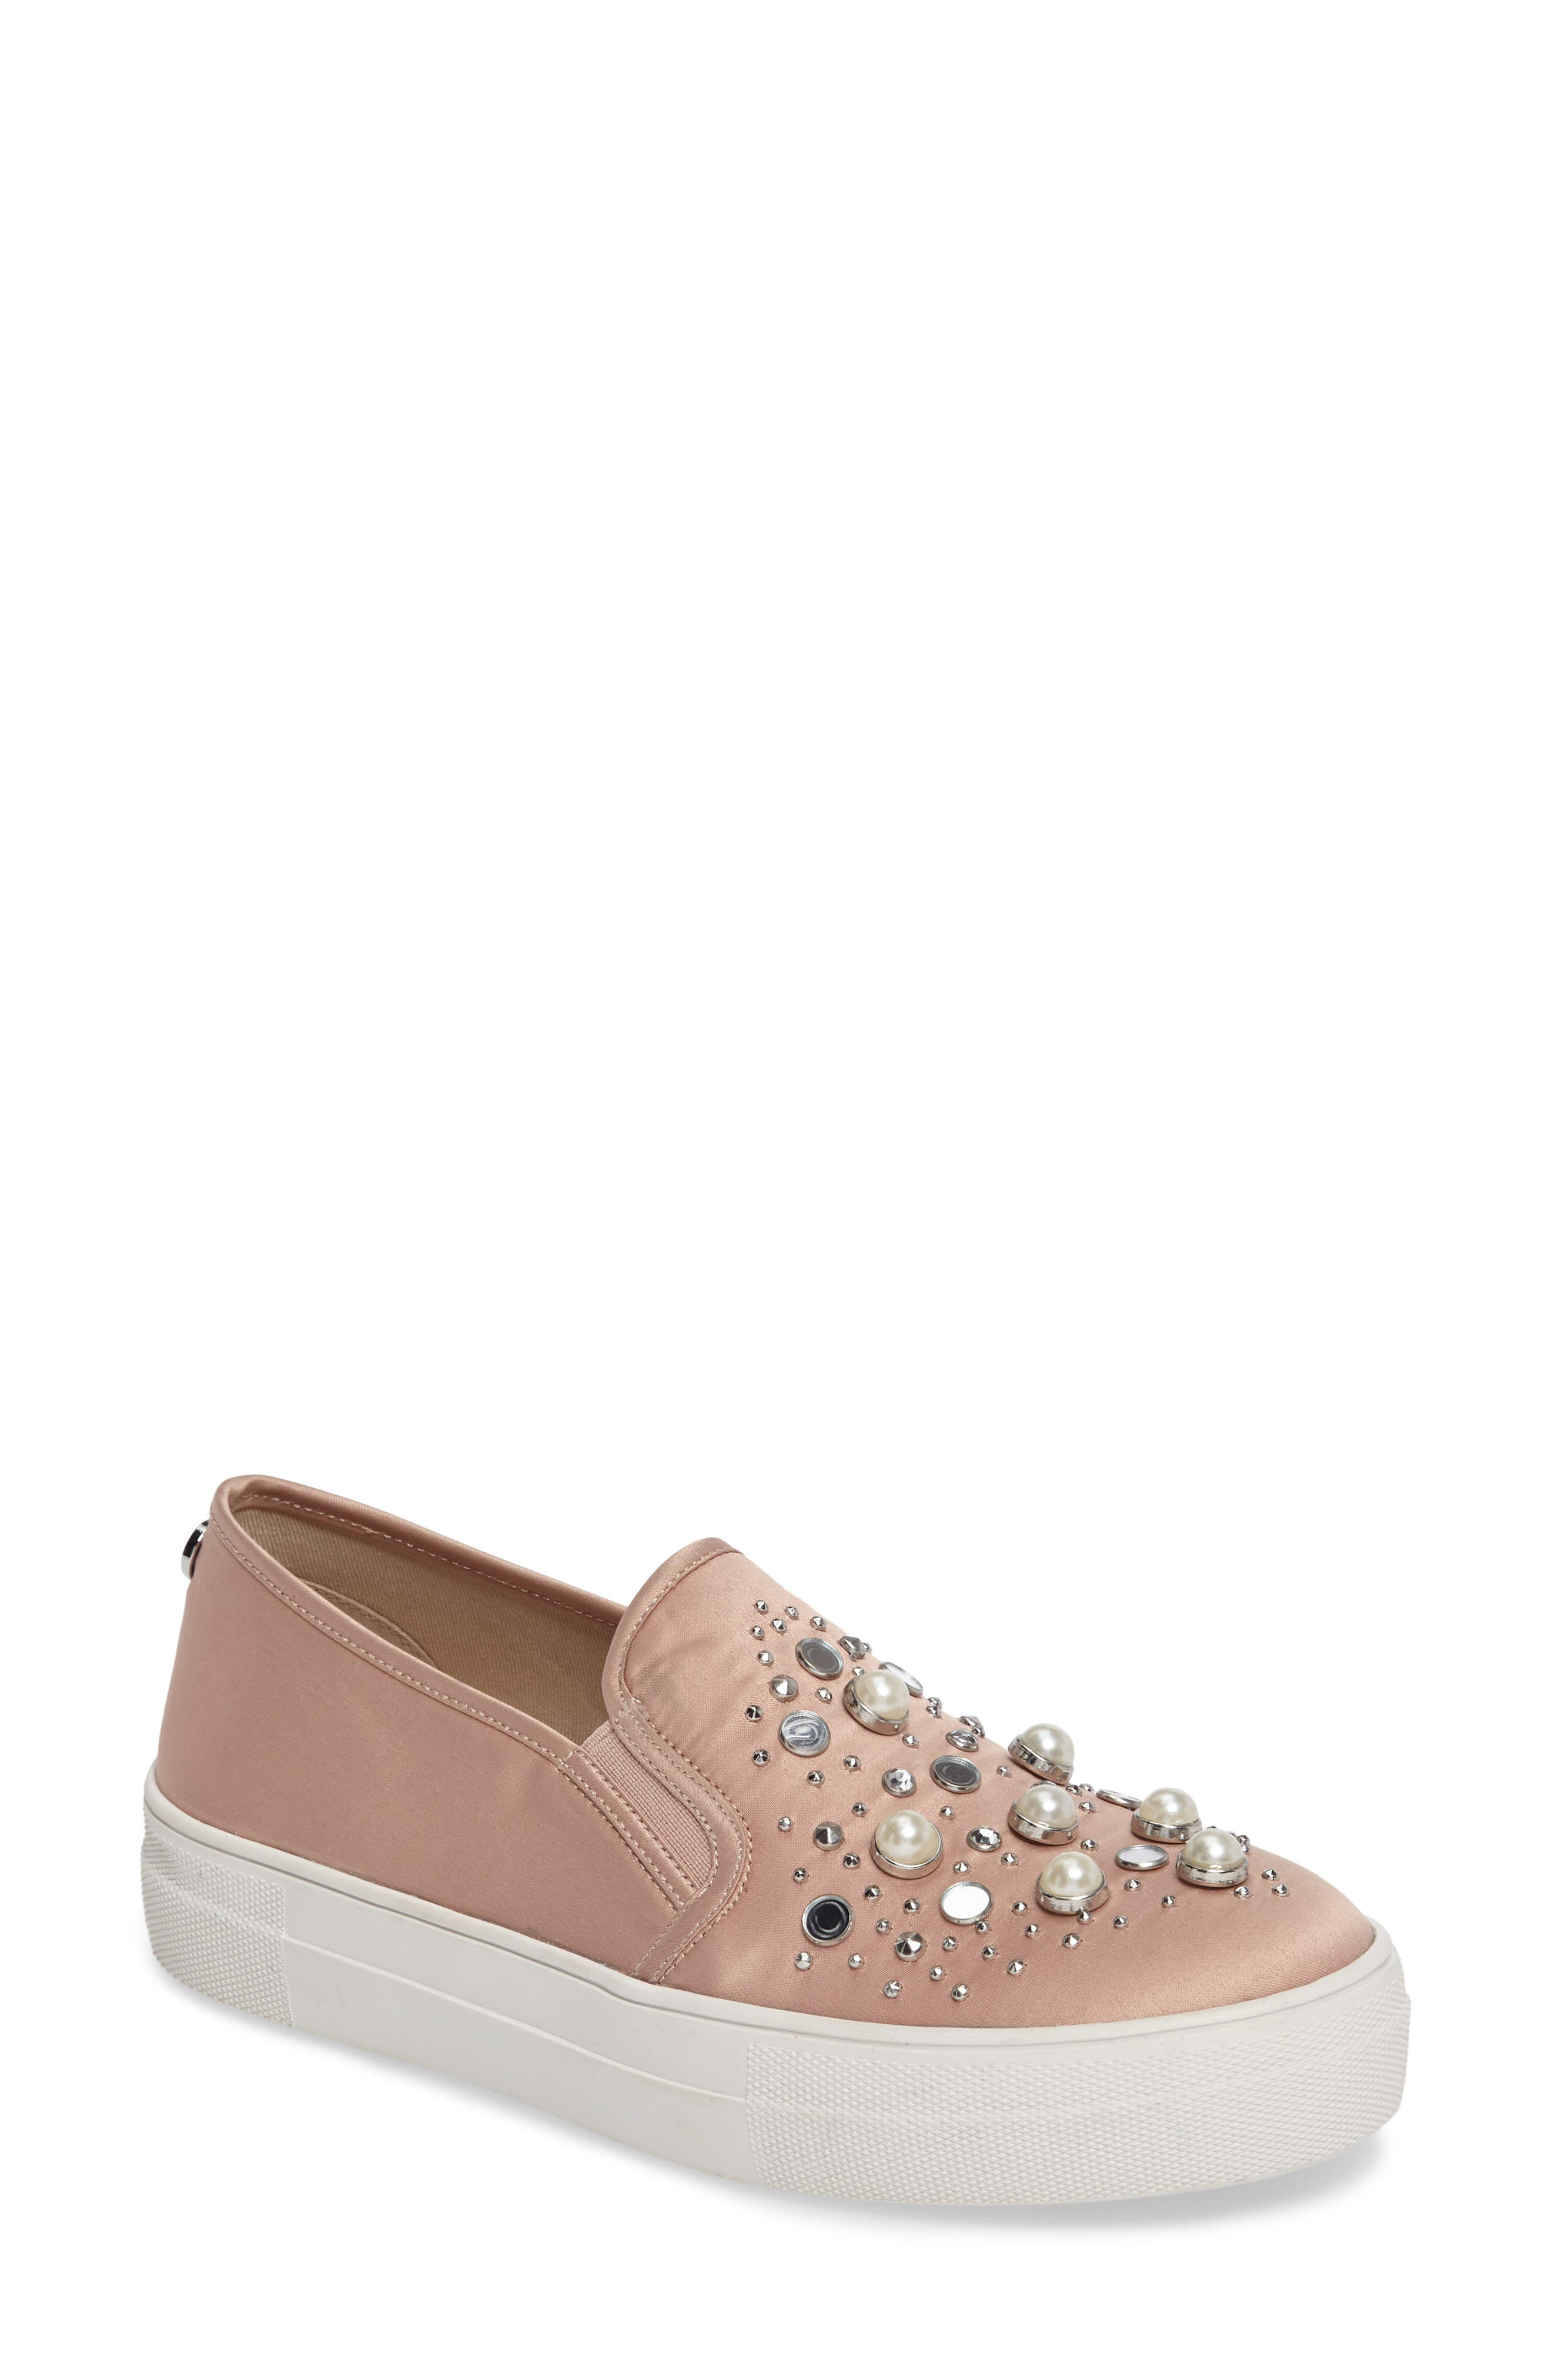 Glade Embellished Slip-On Sneaker,                             Main thumbnail 1, color,                             Blush Satin